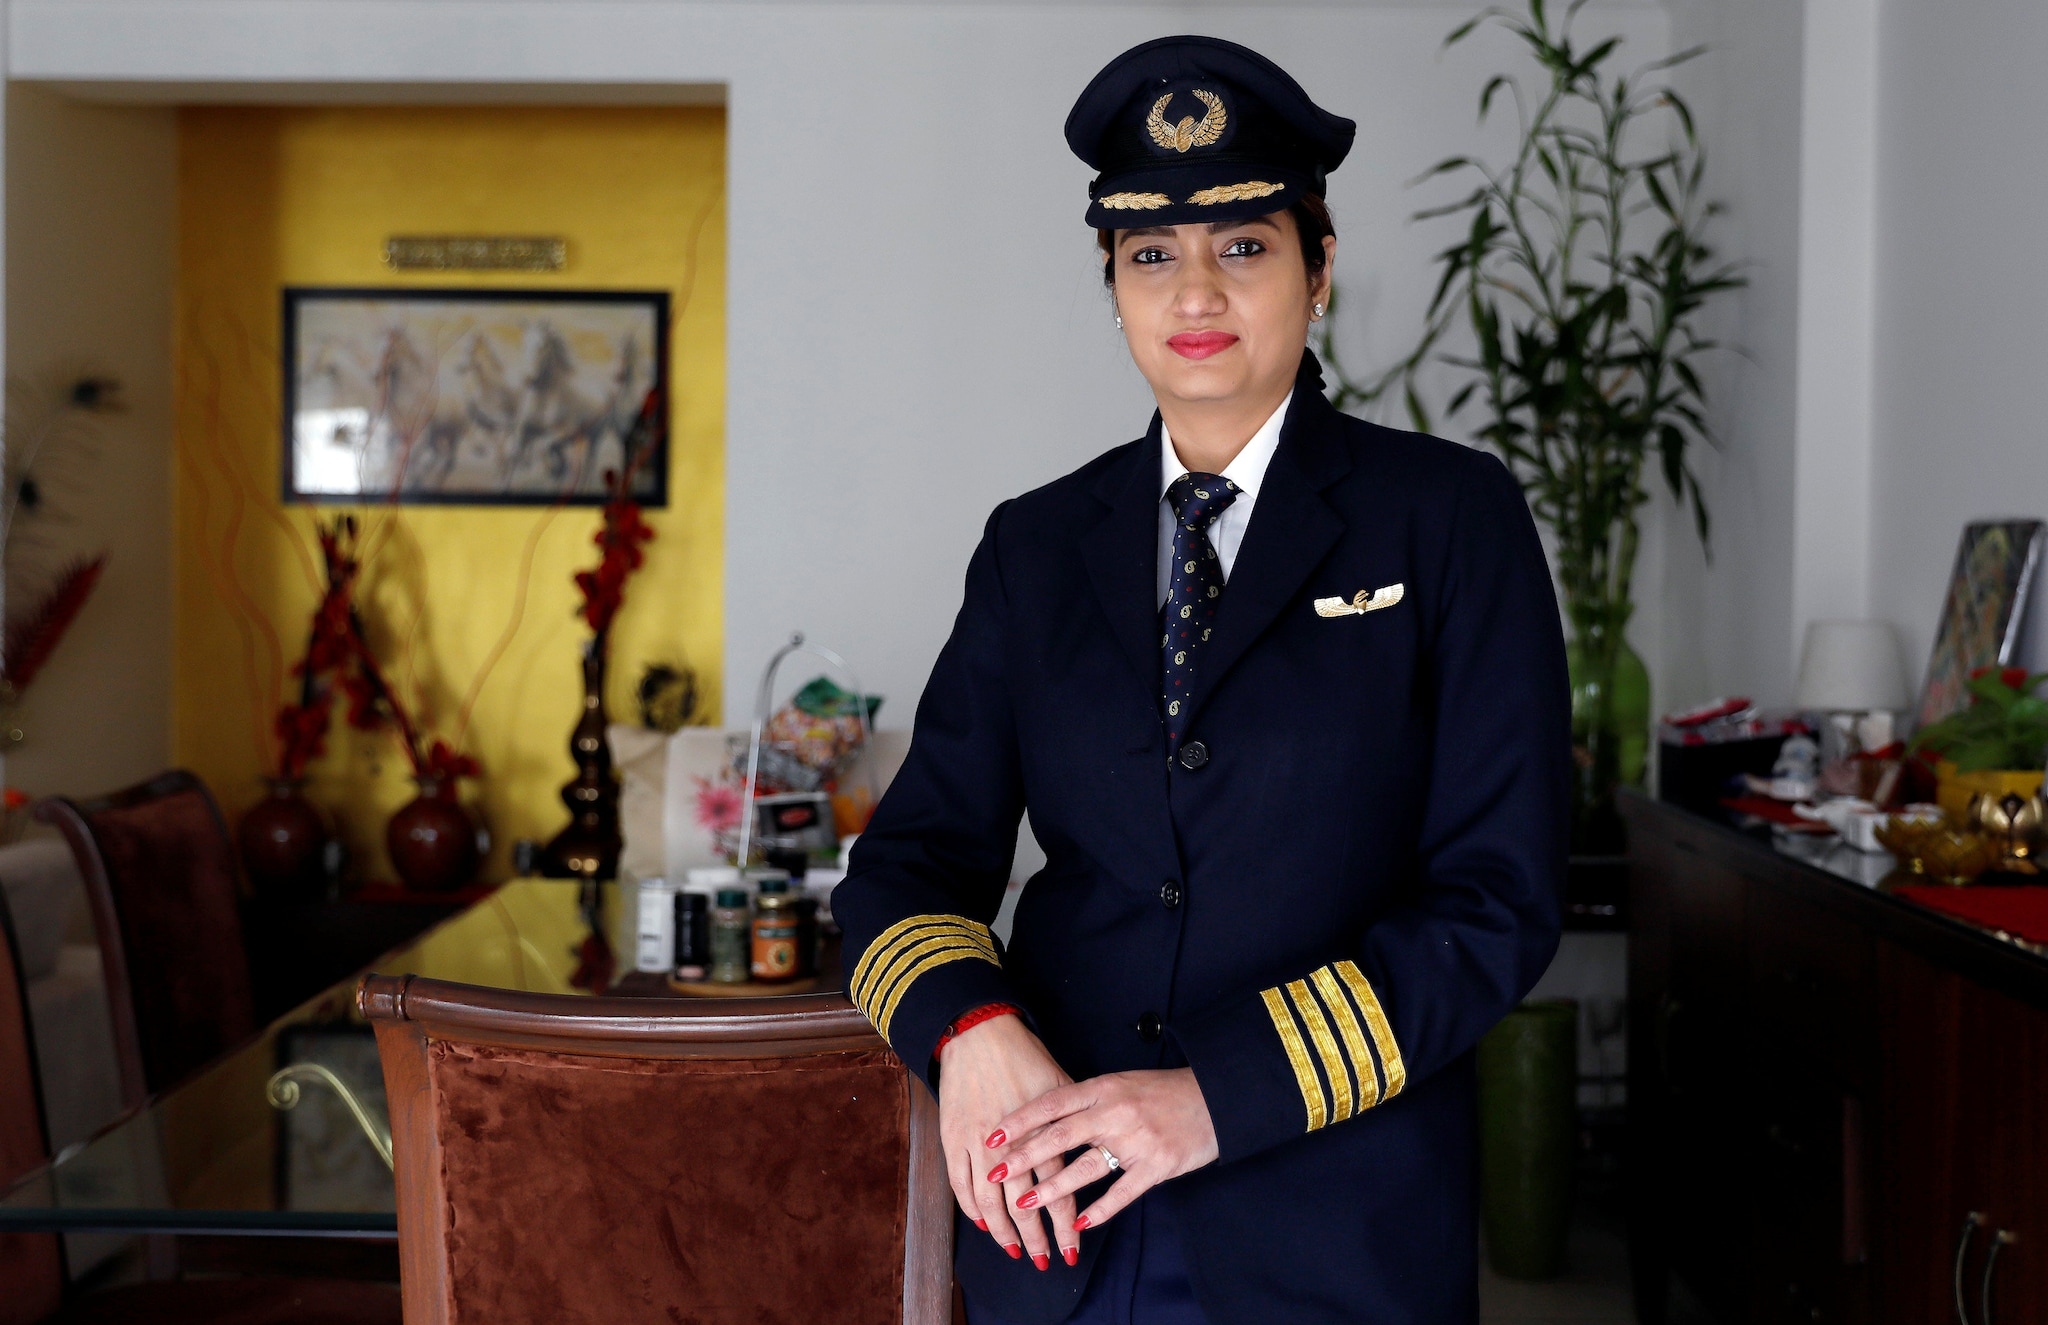 Shweta Singh, a Jet Airways pilot, poses for a picture inside her house in Gurugram, September 3, 2018. REUTERS/Adnan Abidi